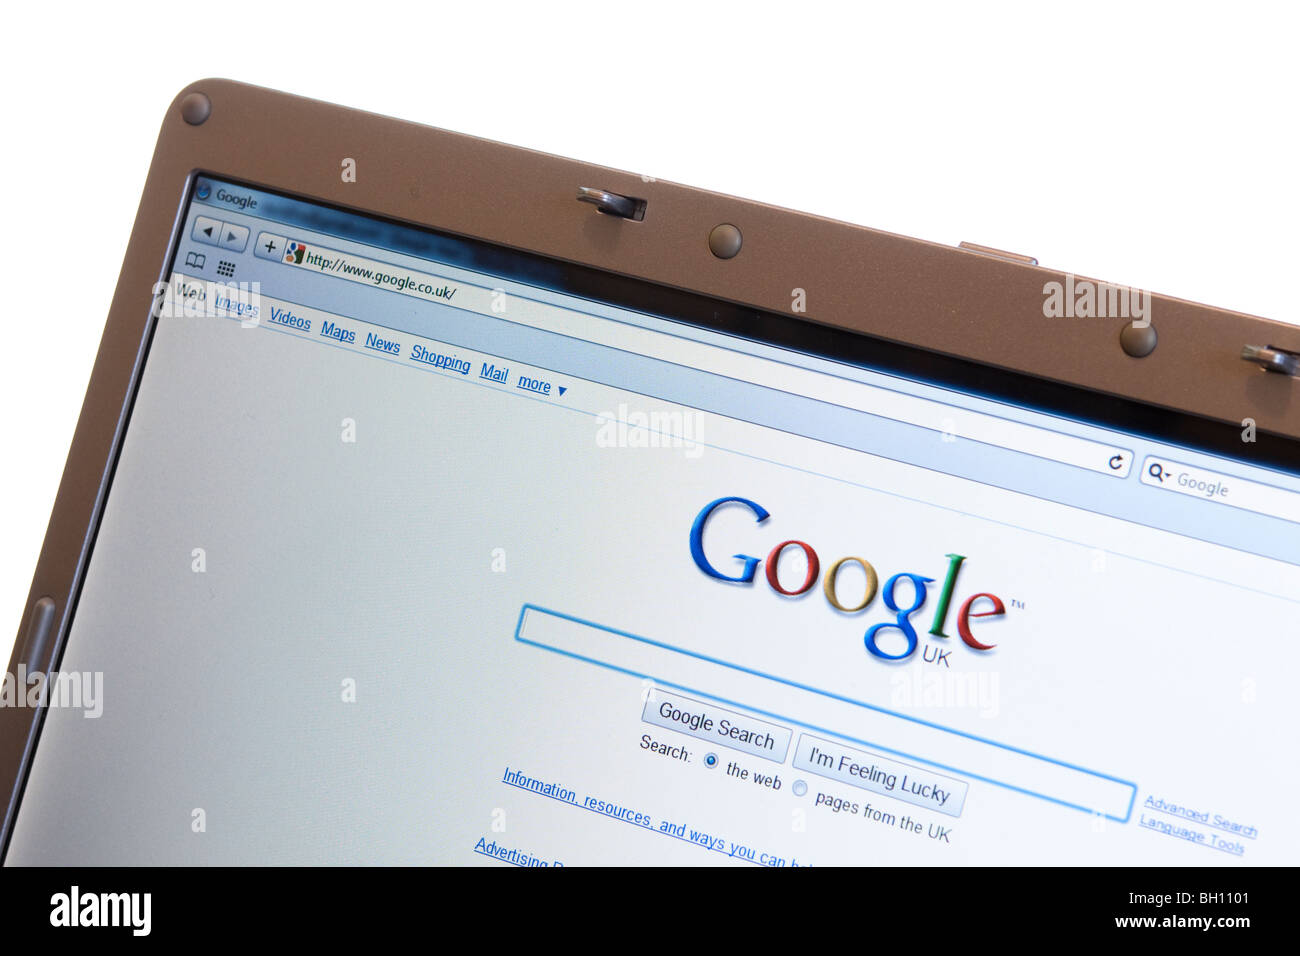 Google search engine website shown on modern laptop - Stock Image